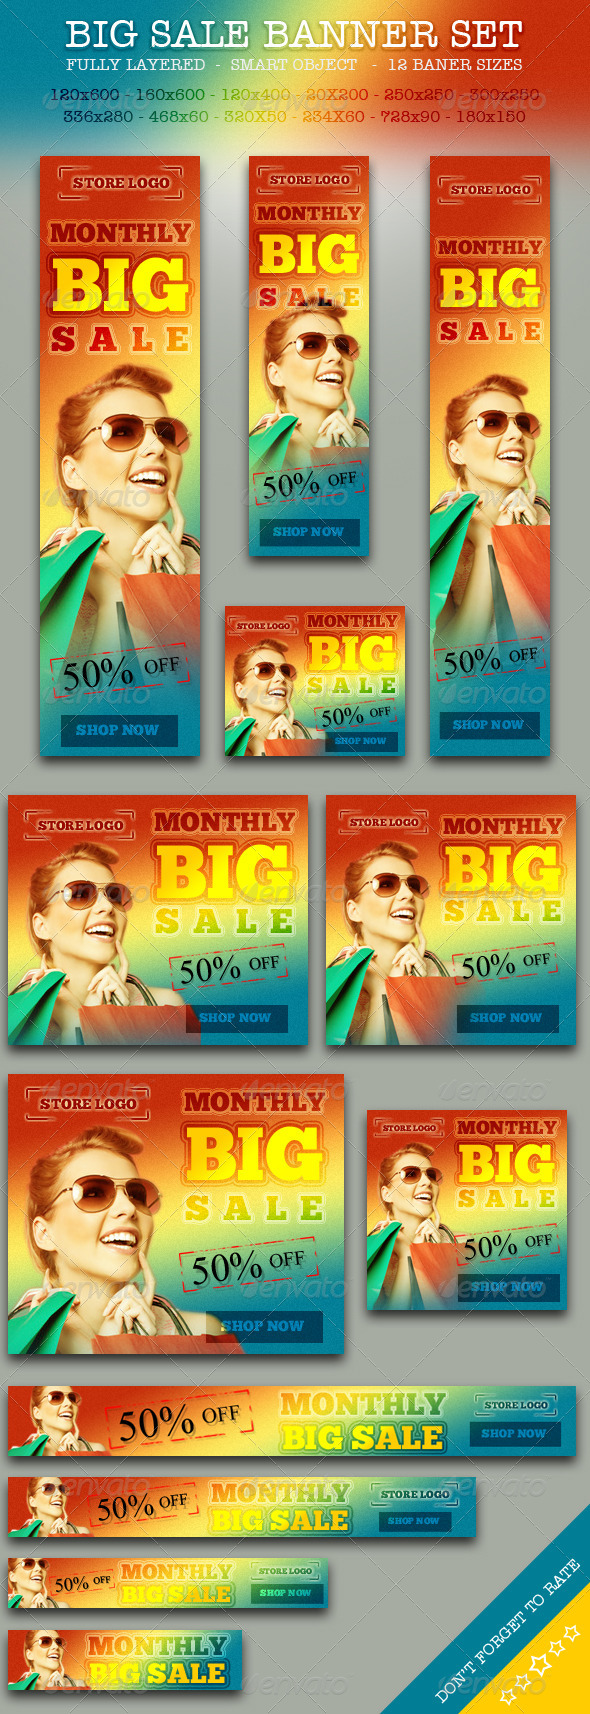 BIG Sale Promotion Online Store Banner ad Set - Banners & Ads Web Elements